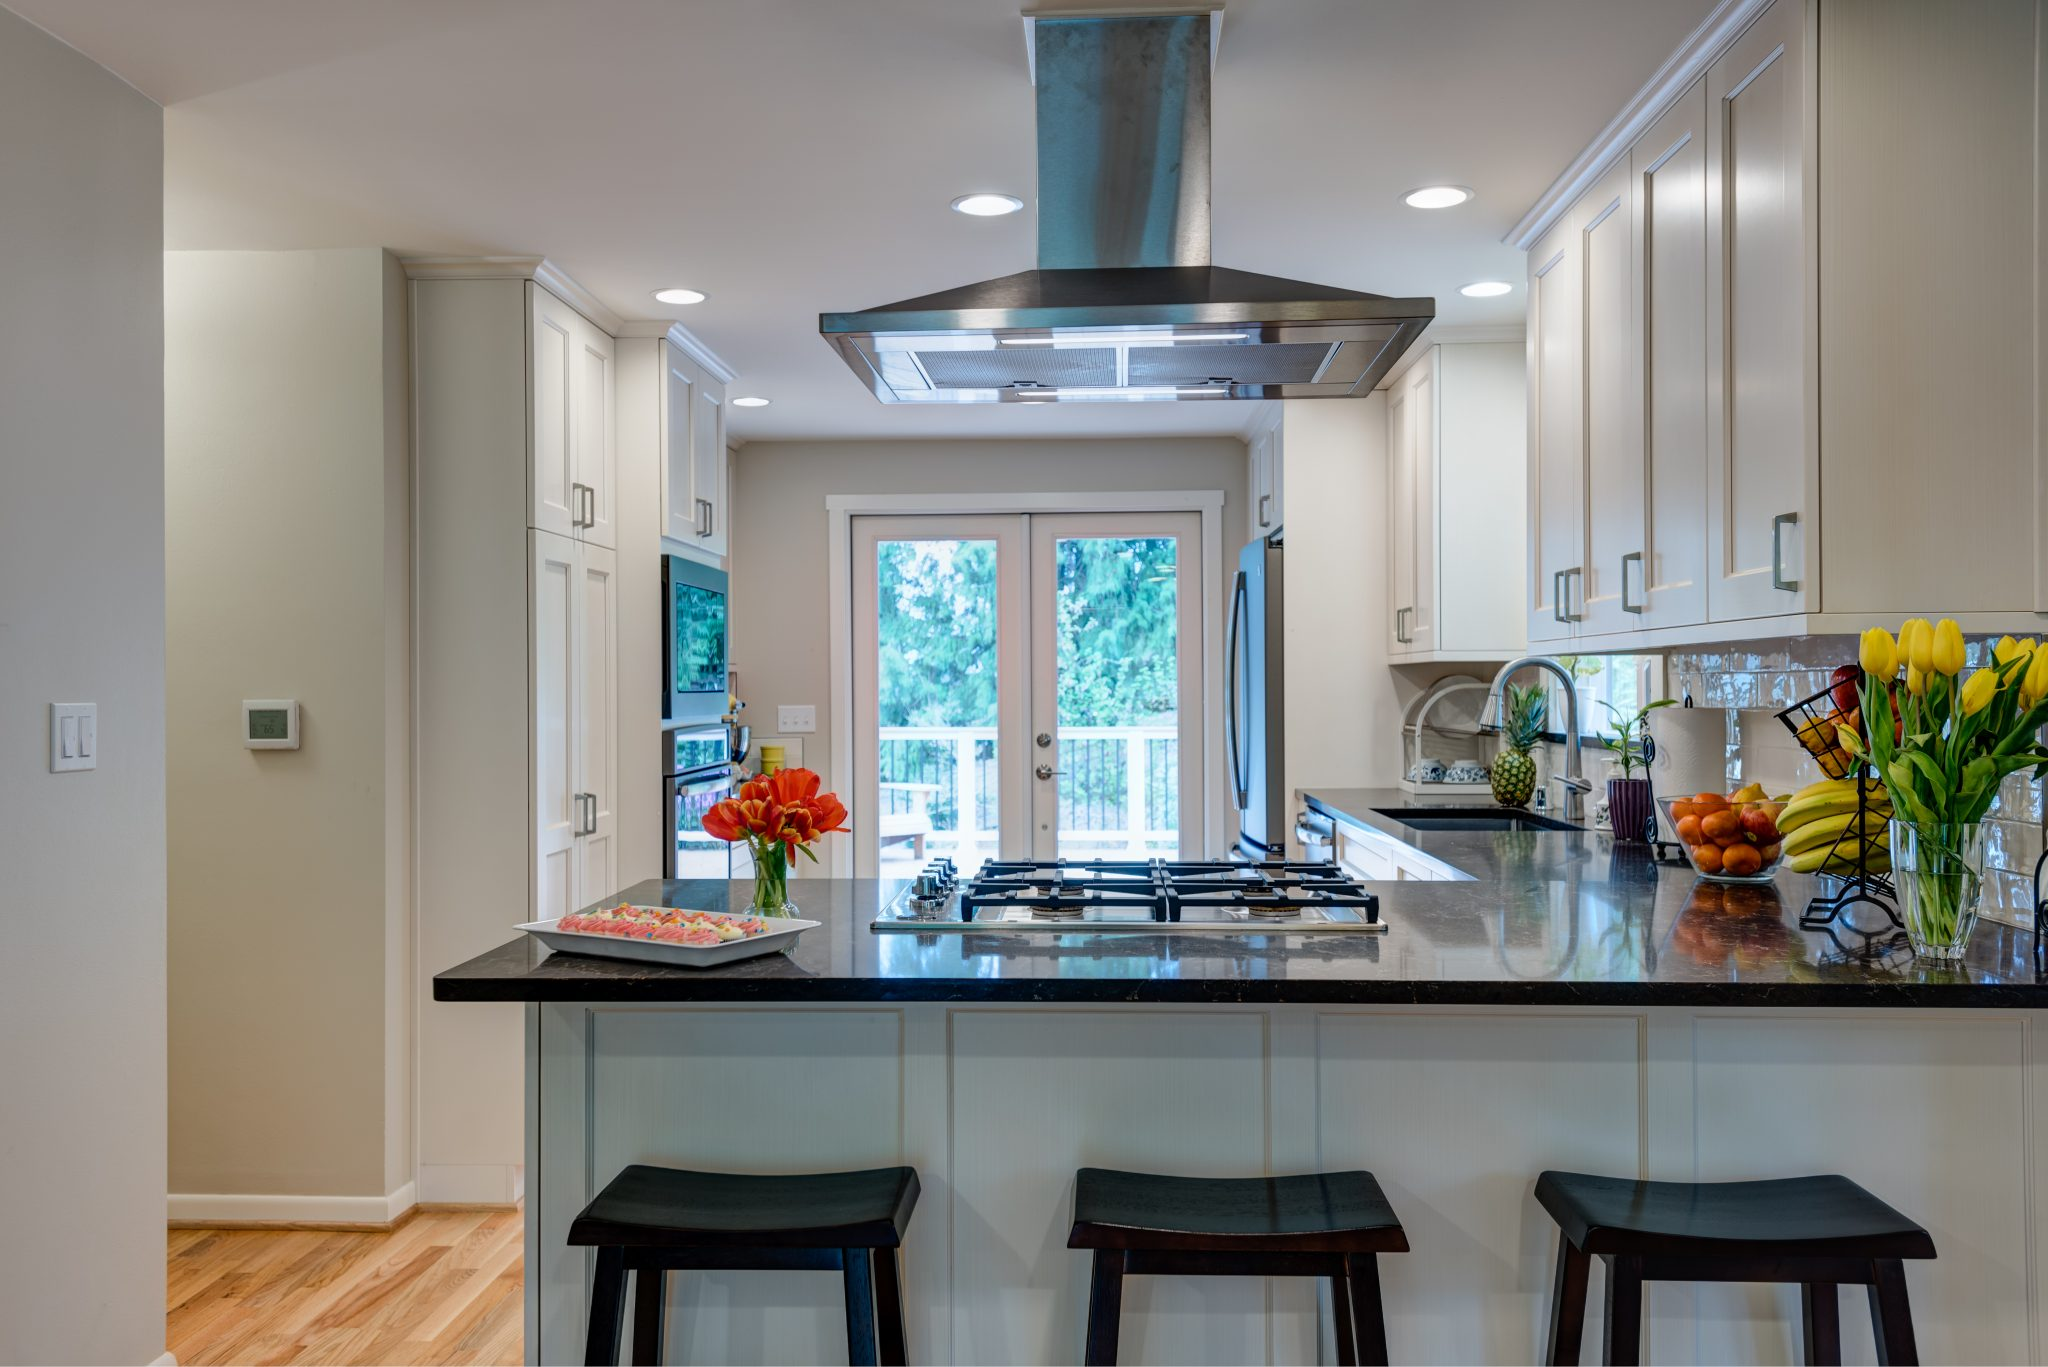 2018 Remodeled Home Tours - Irons Brothers Construction